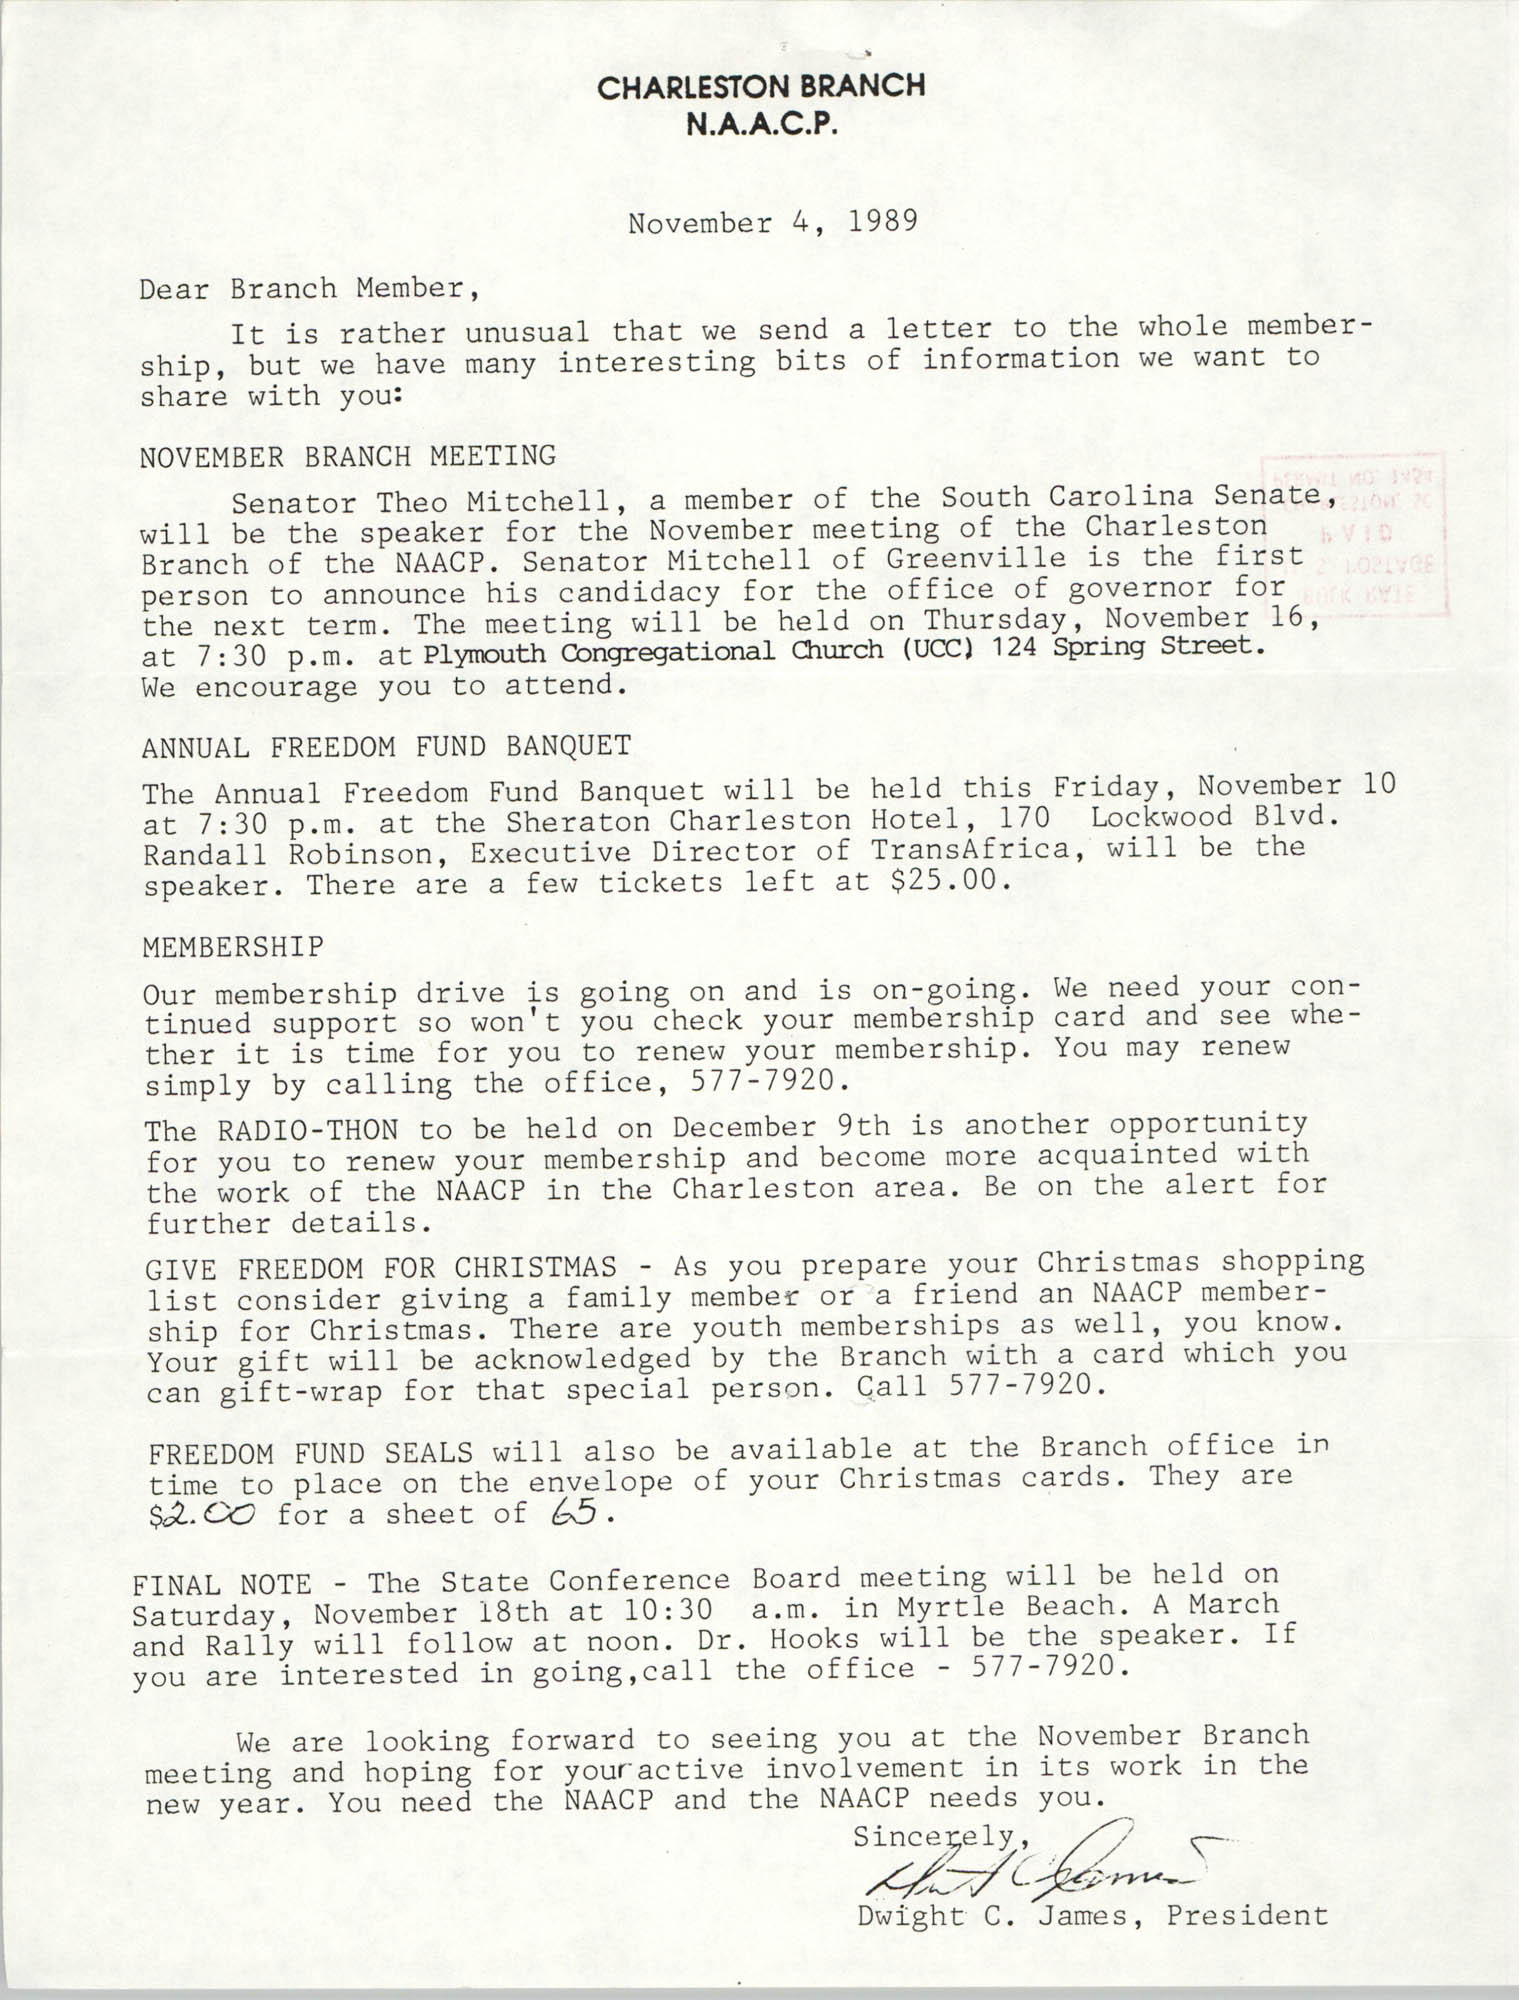 Letter from Dwight C. James to Charleston Branch of the NAACP, November 4, 1989